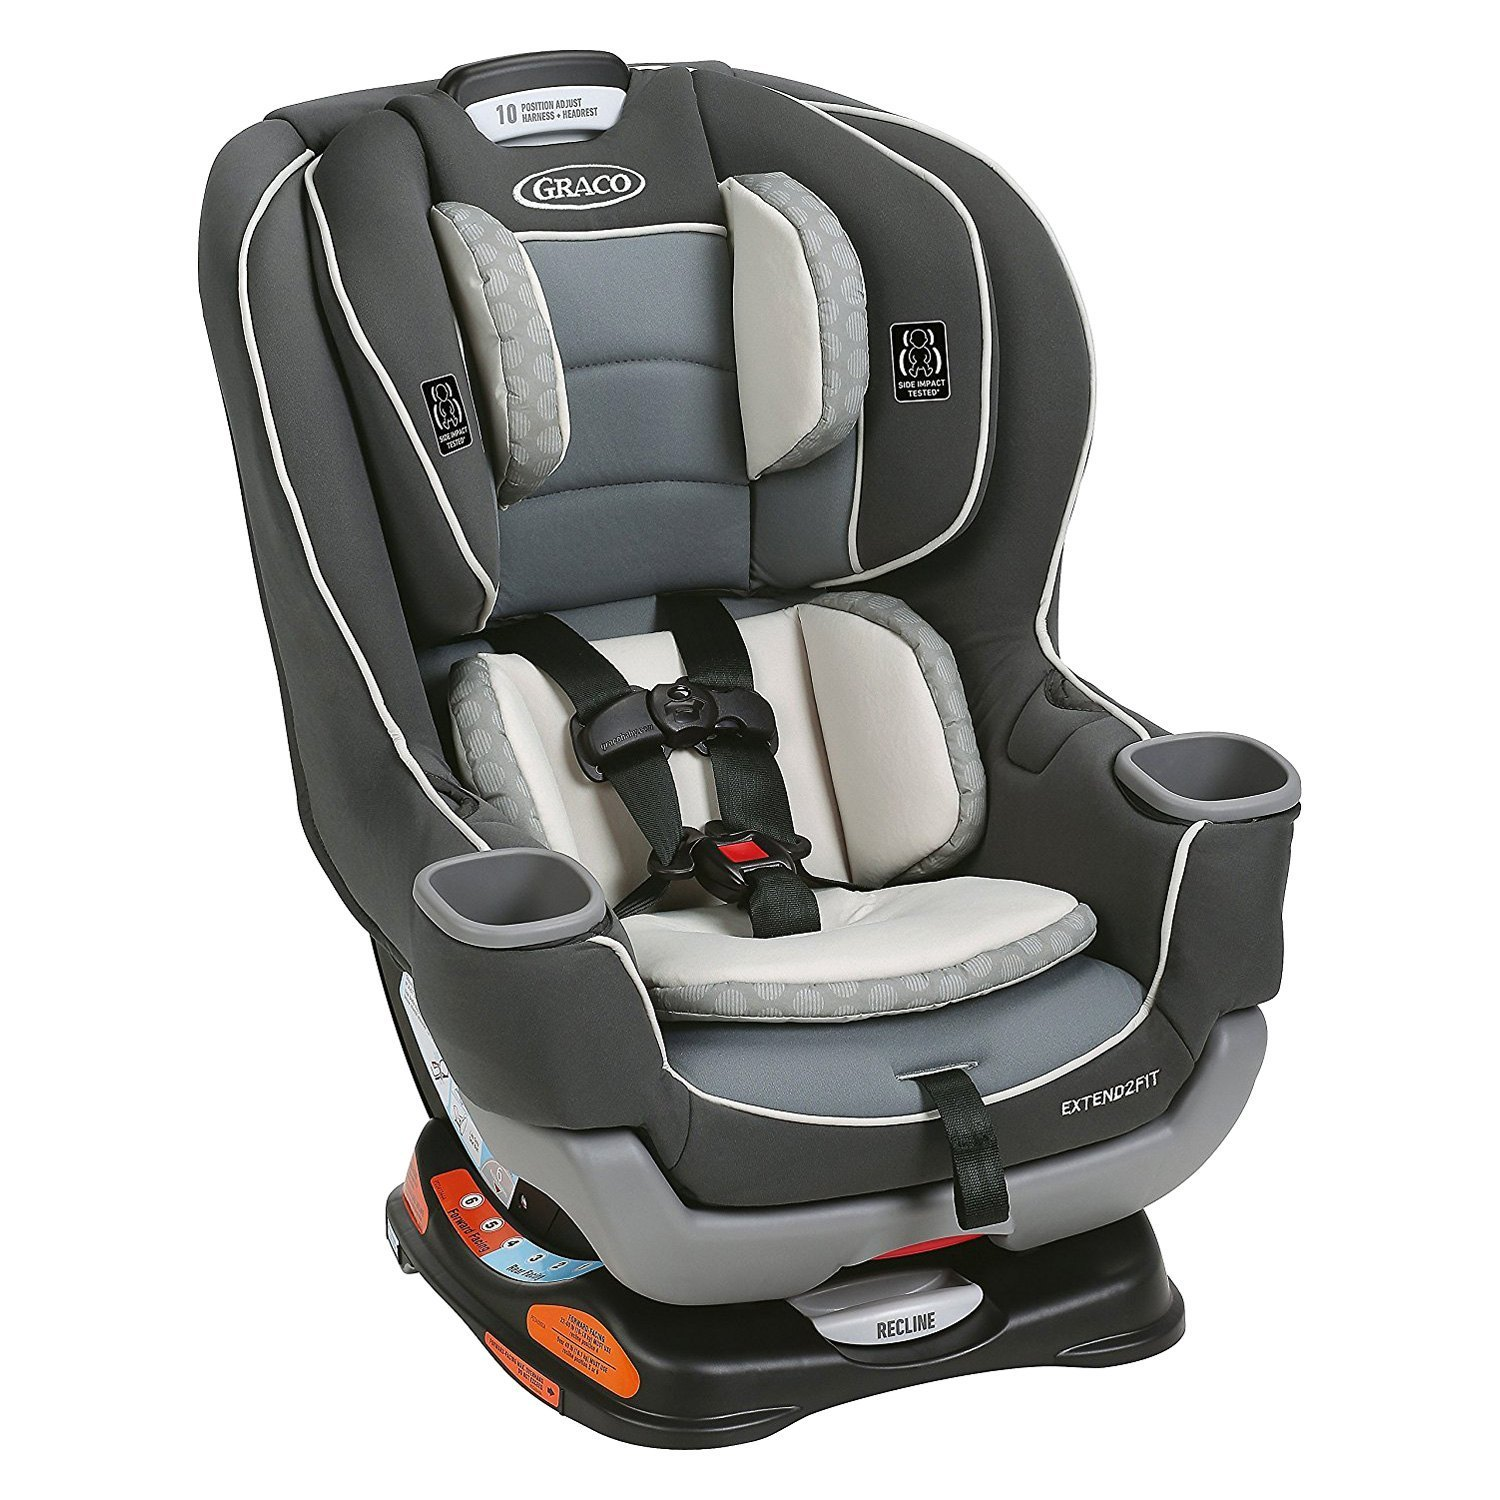 graco baby 1993220 extend2fit basin style convertible car seat. Black Bedroom Furniture Sets. Home Design Ideas